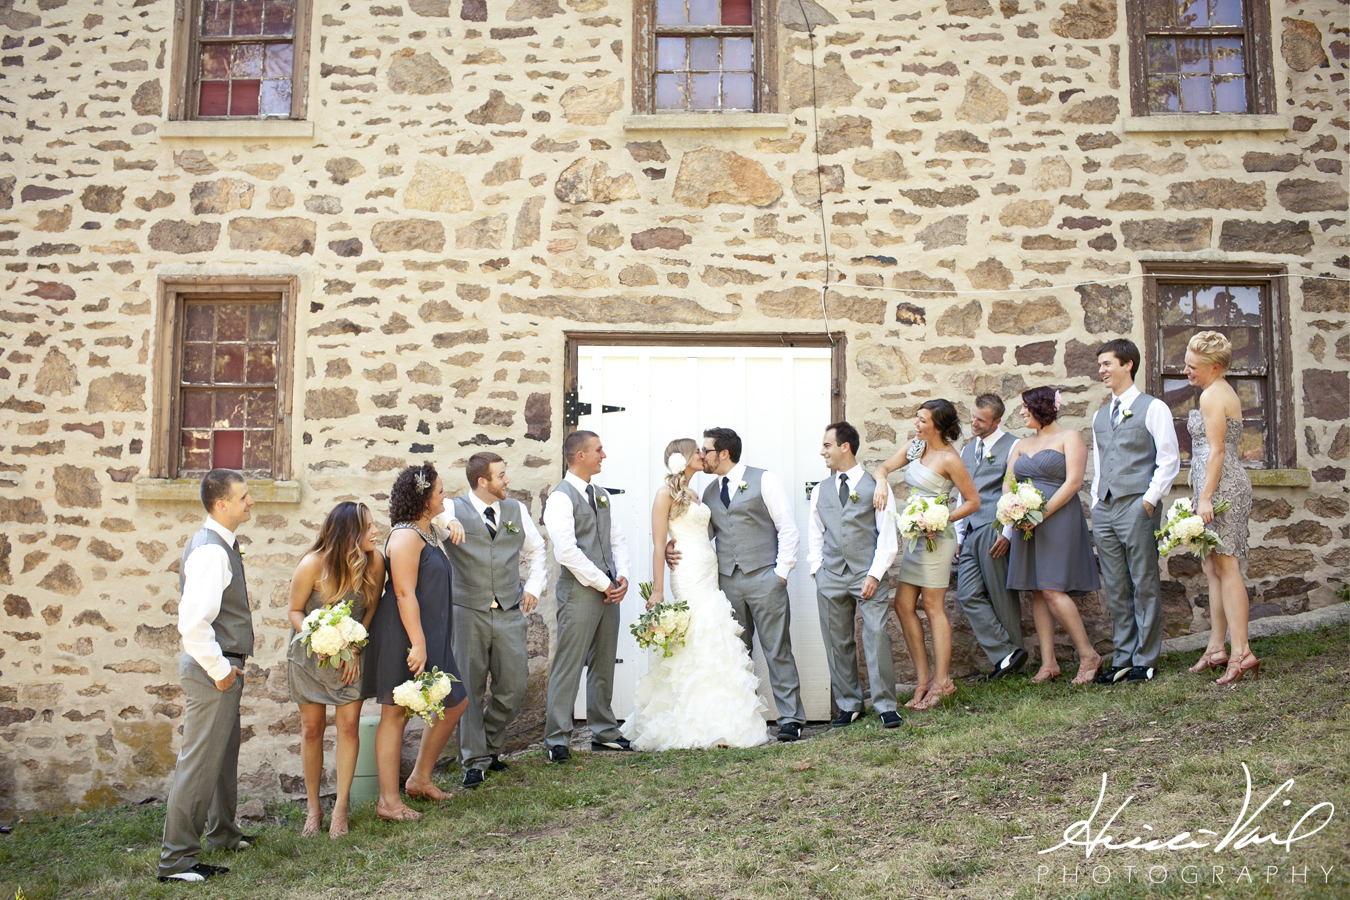 10 Barn Wedding Venues to Love in the Philadelphia Area | Partyspace